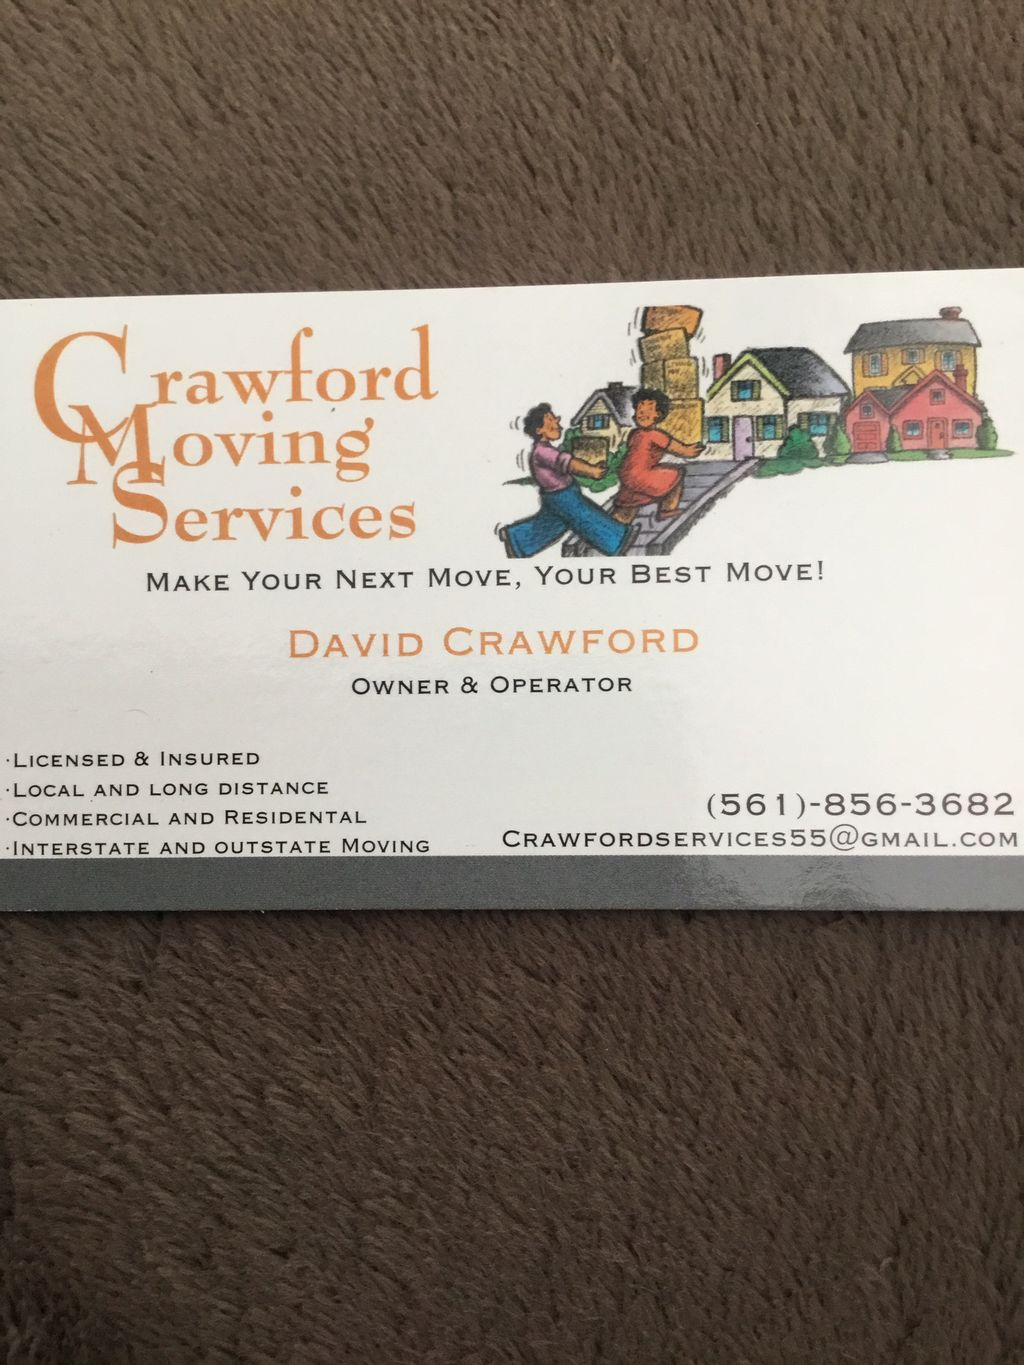 Crawford Moving Services